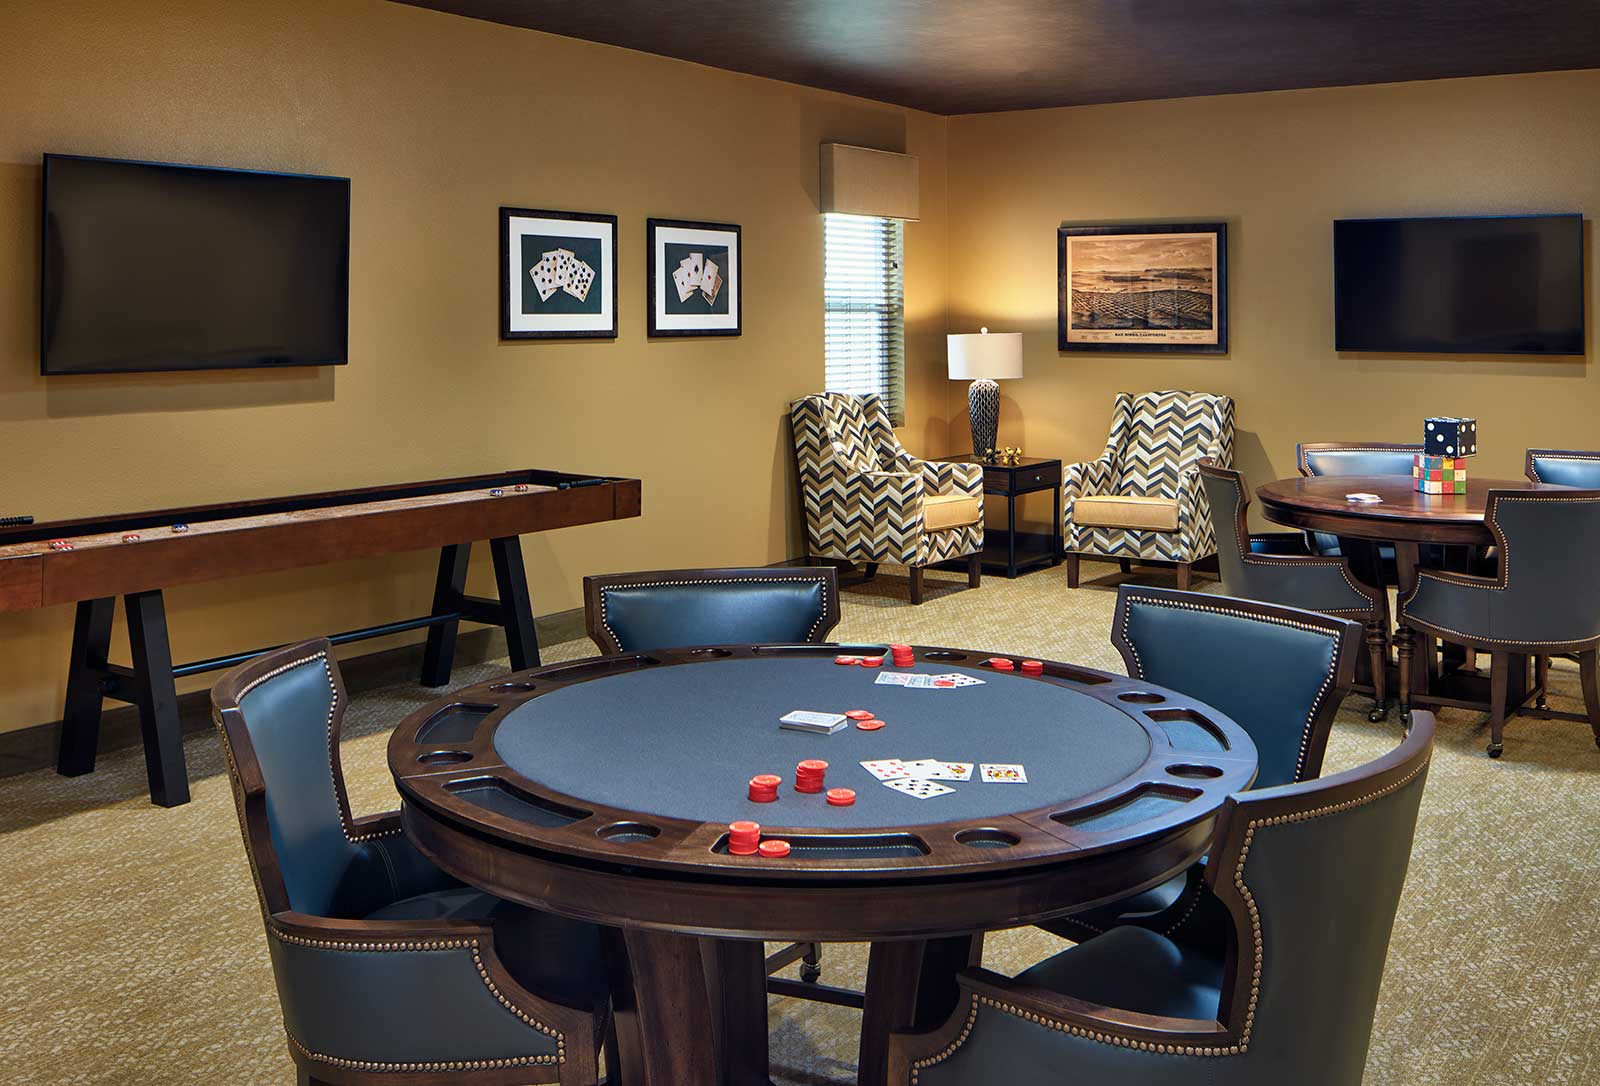 Poker Table Common Room at Senior Living Community